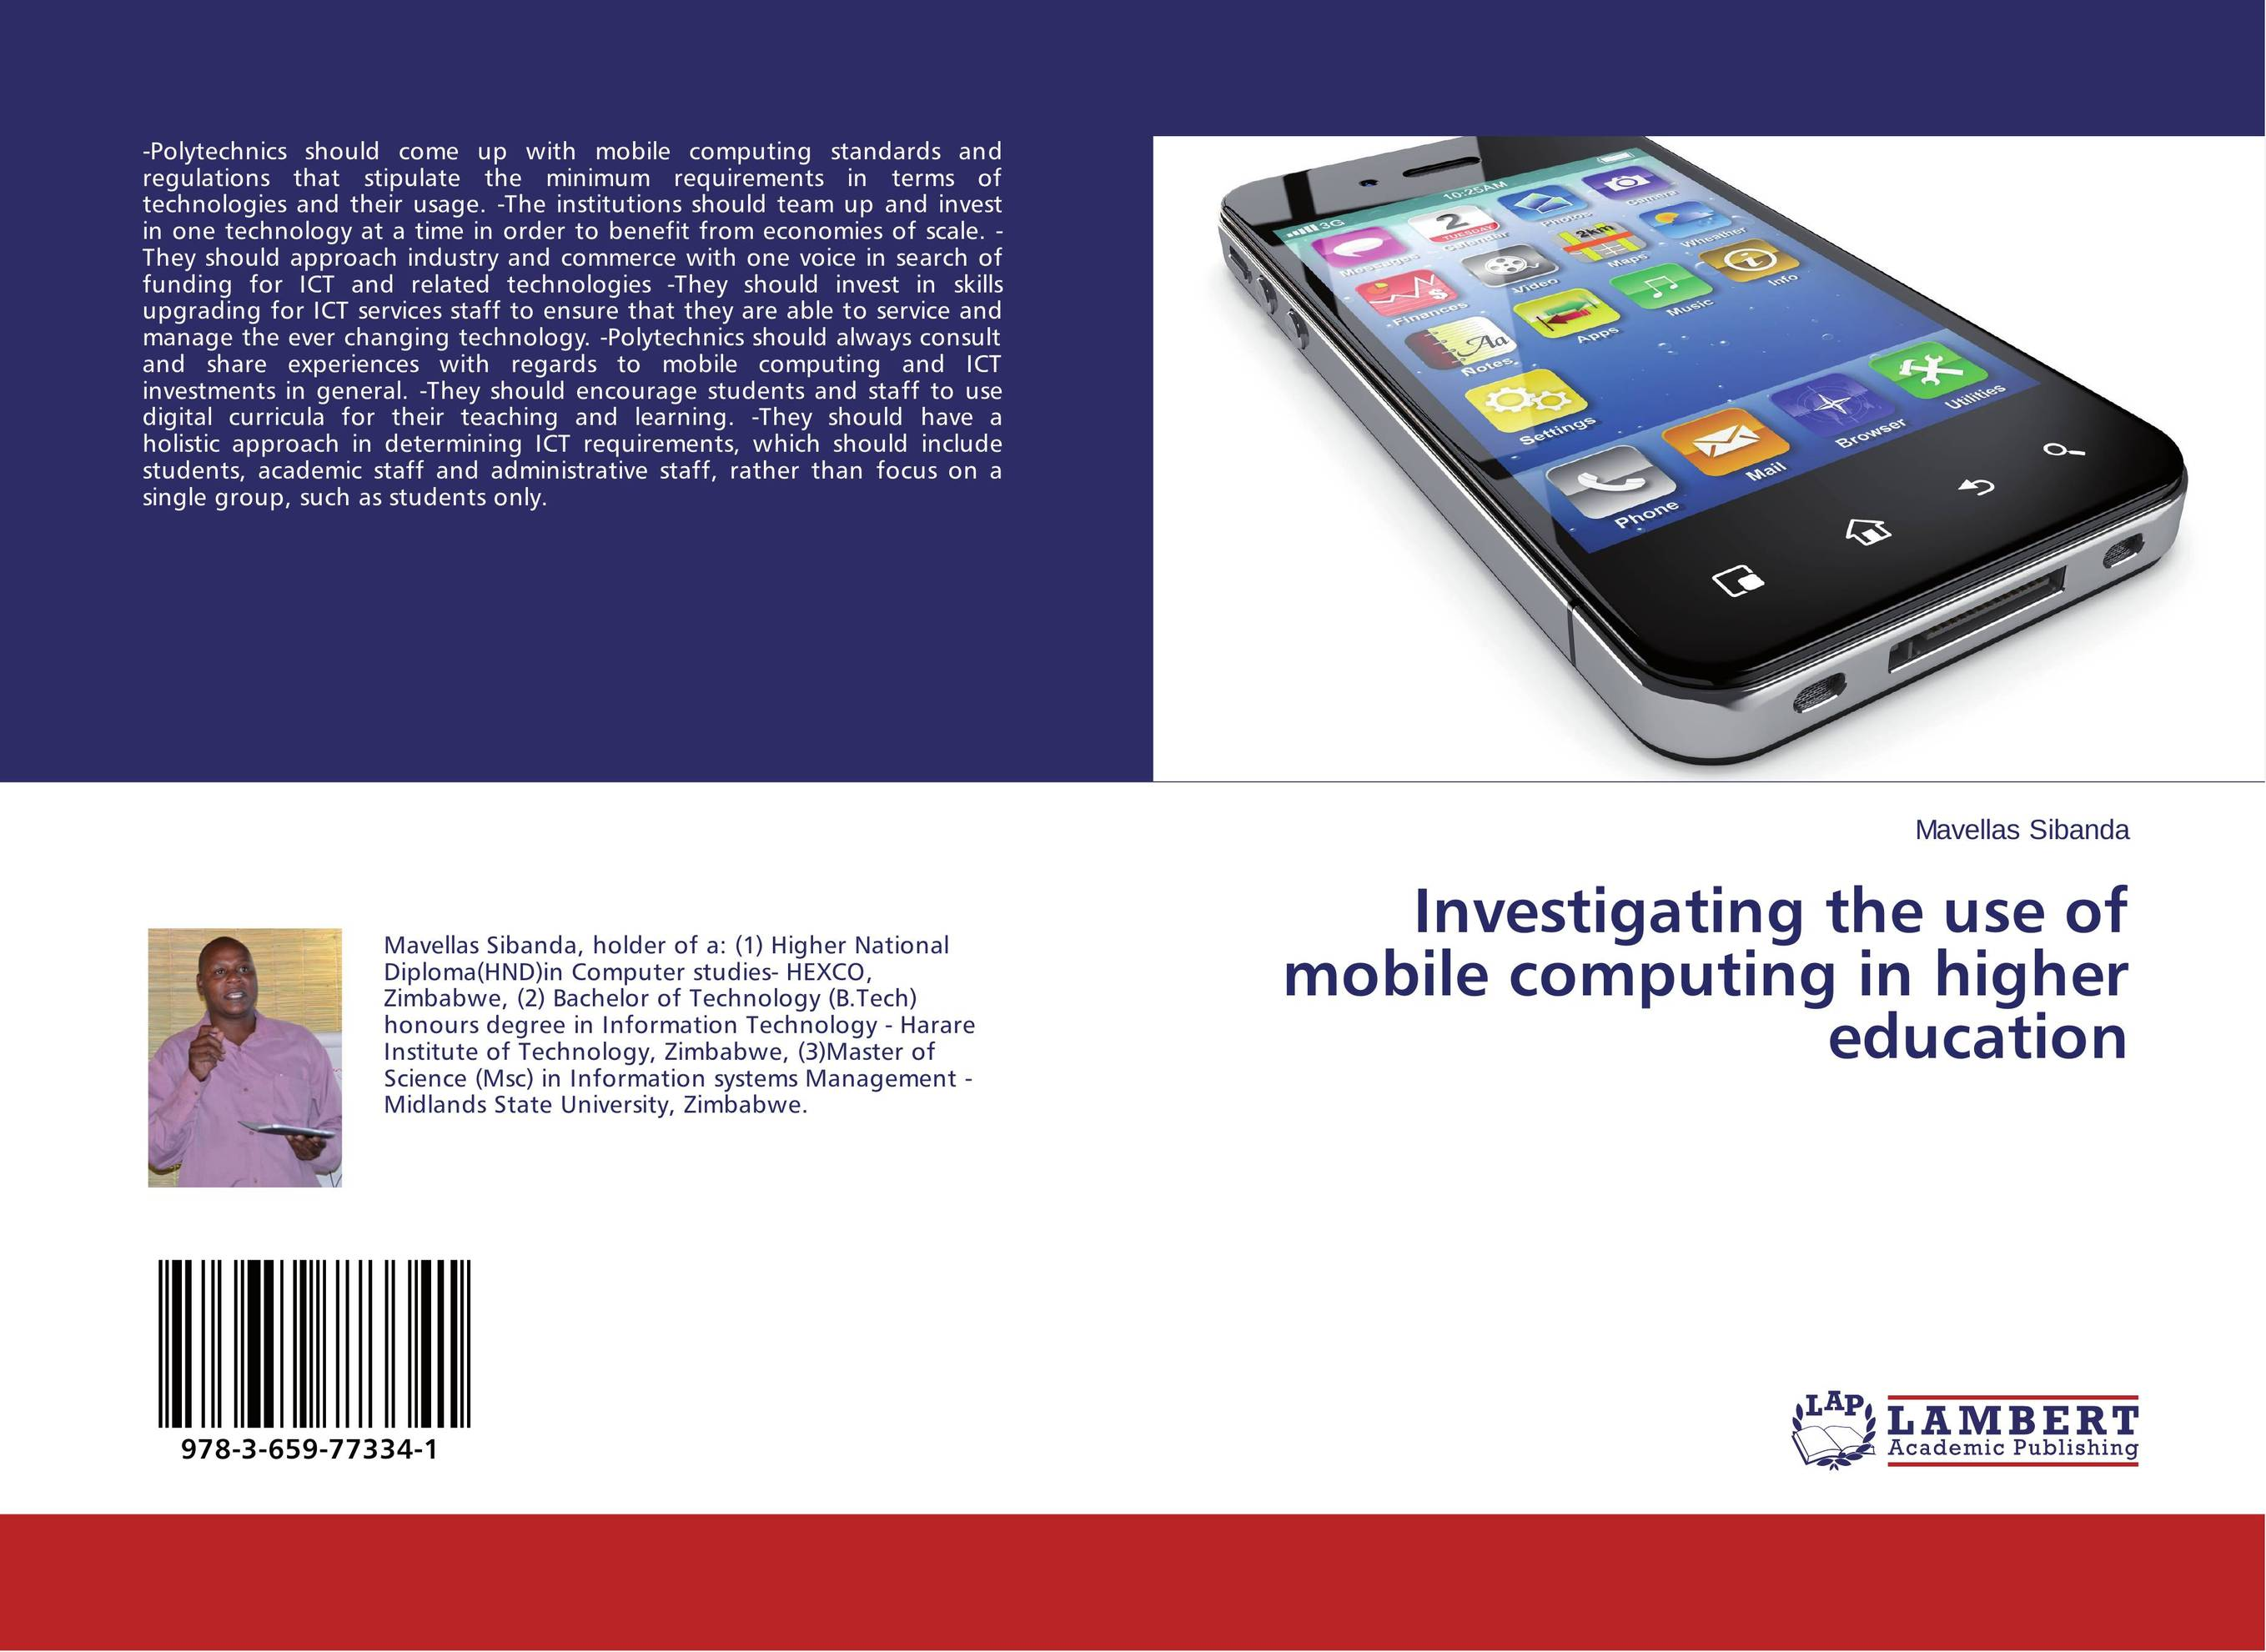 Investigating the use of mobile computing in higher education the use of ict for learning at dinaledi school in the limpopo province